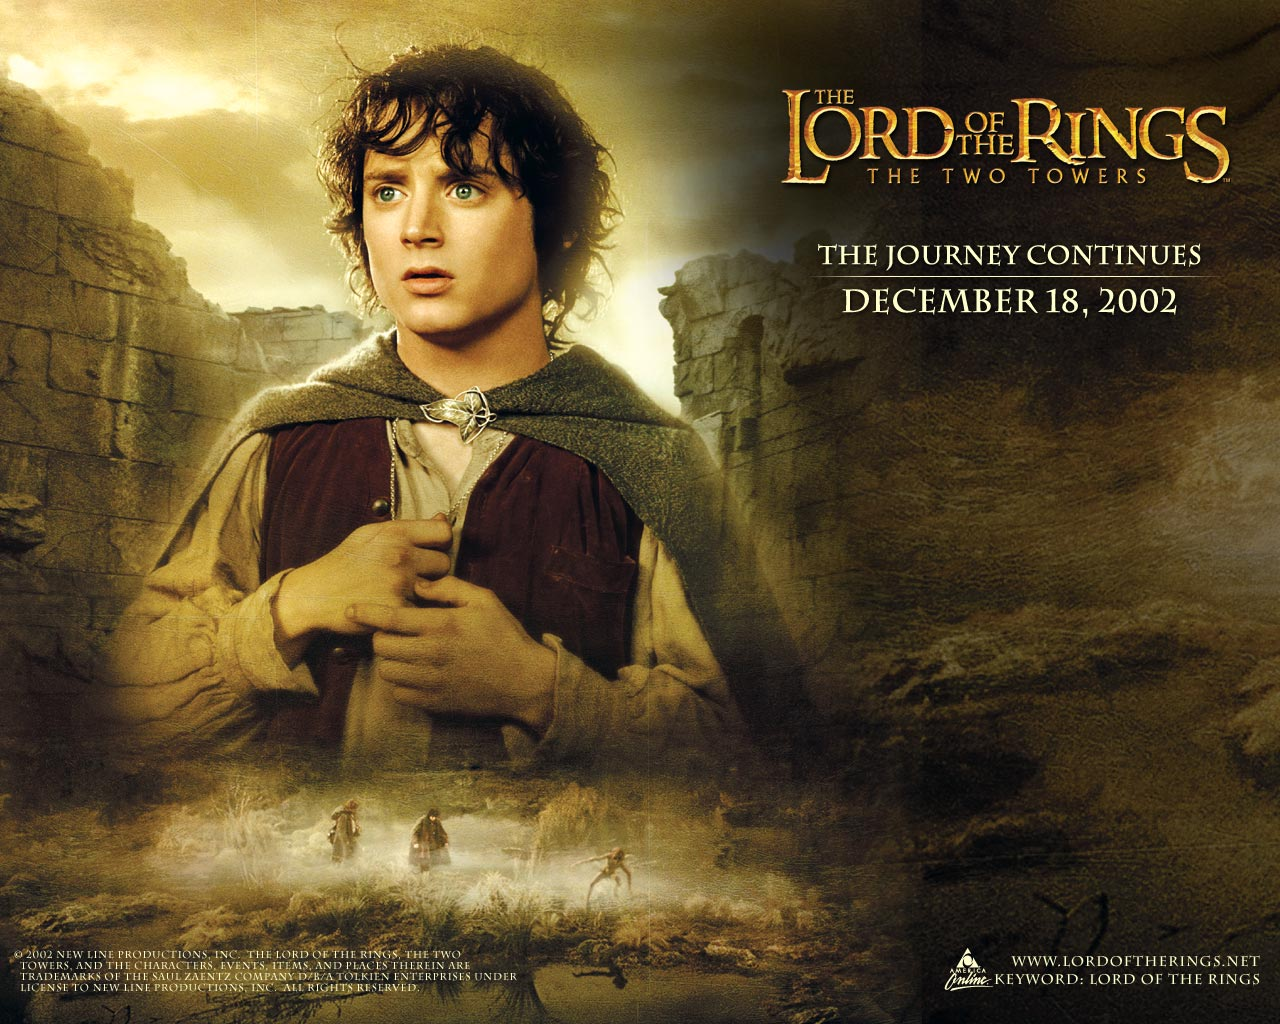 http://2.bp.blogspot.com/_F9D-oT93AnM/TOC59jVTWHI/AAAAAAAAABA/iiXptRlU1oo/s1600/Elijah_Wood_in_The_Lord_of_the_Rings+_The_Two_Towers_Wallpaper_5_1280.jpg